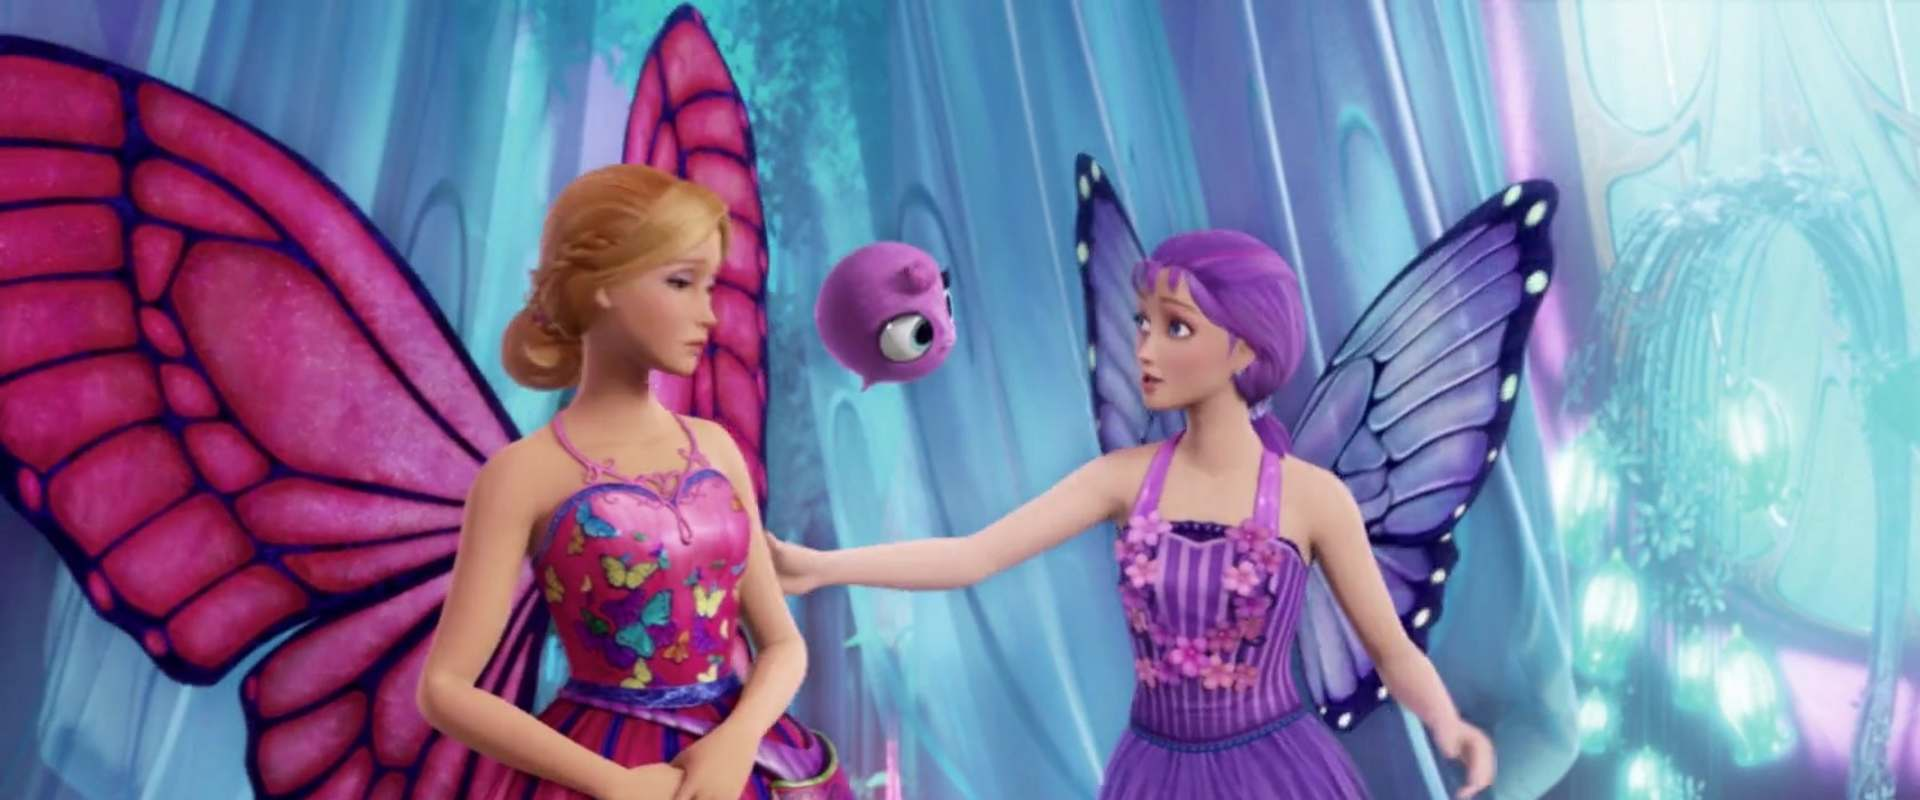 Barbie Mariposa & the Fairy Princess background 2